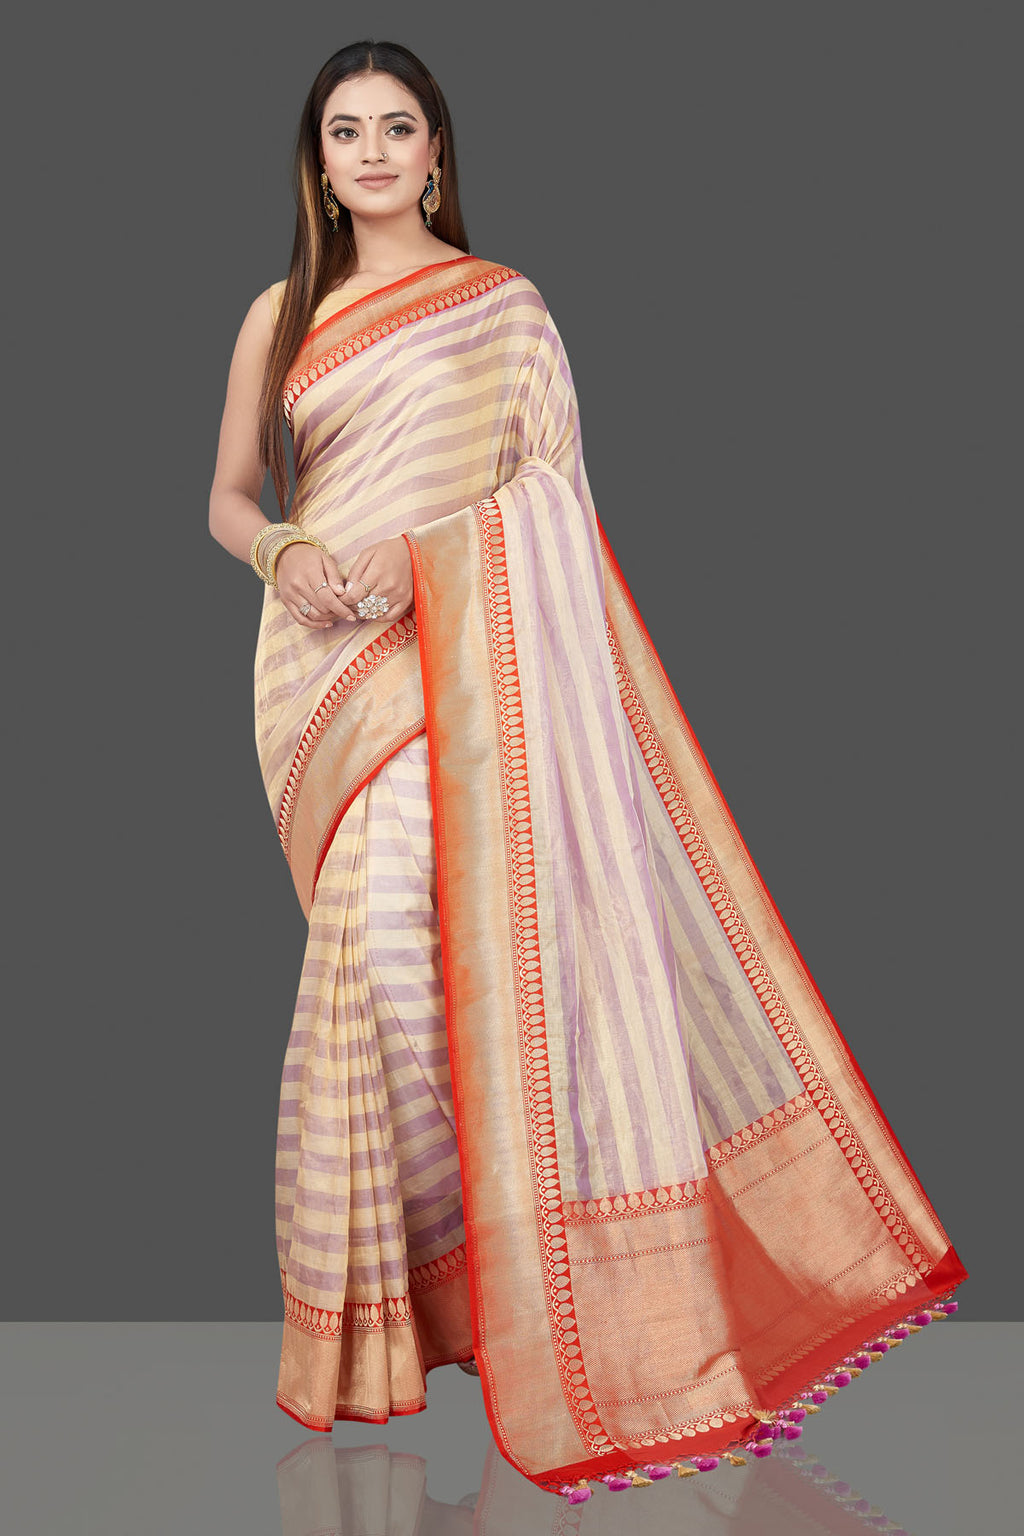 Shop beautiful lilac and cream stripes tissue cotton sari online in USA with red zari border. Flaunt ethnic fashion on special occasions in stunning georgette sarees, designer saris, embroidered sarees, pure silk sarees, Kanchipuram sarees from Pure Elegance Indian fashion store in USA.-full view